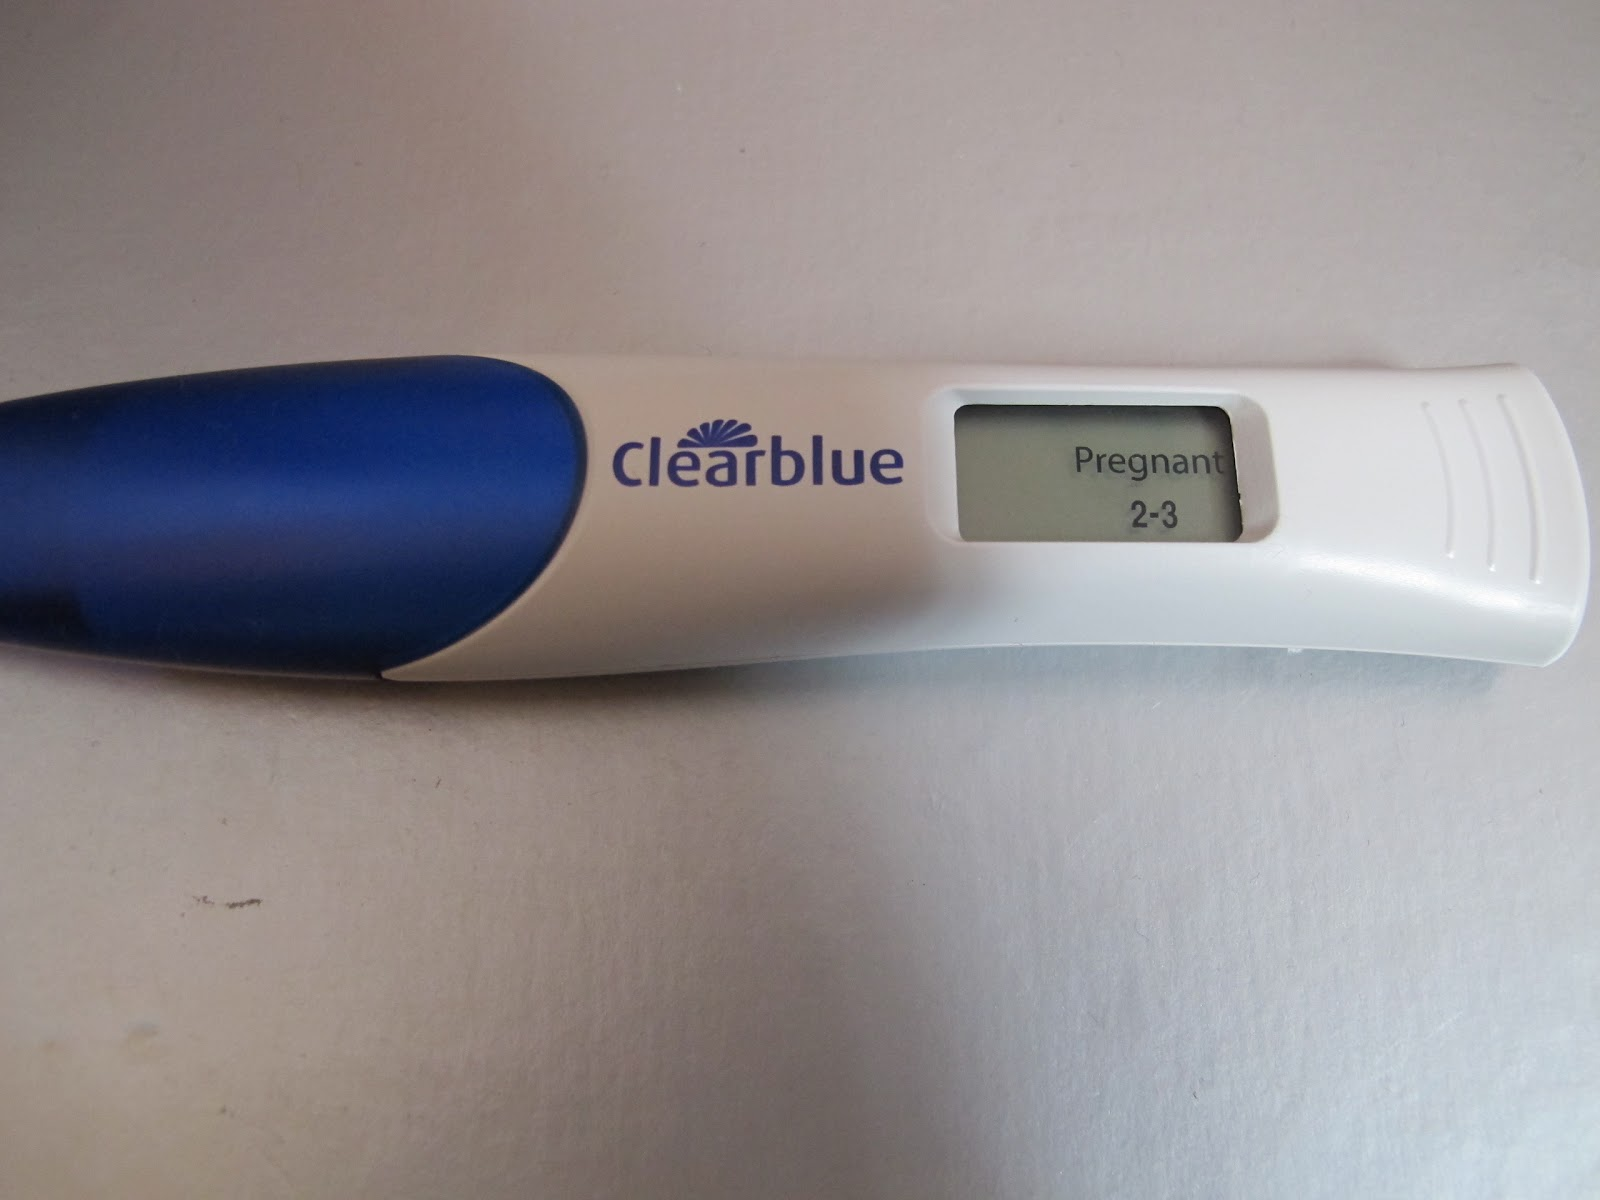 Clearblue+pregnancy+test+negative